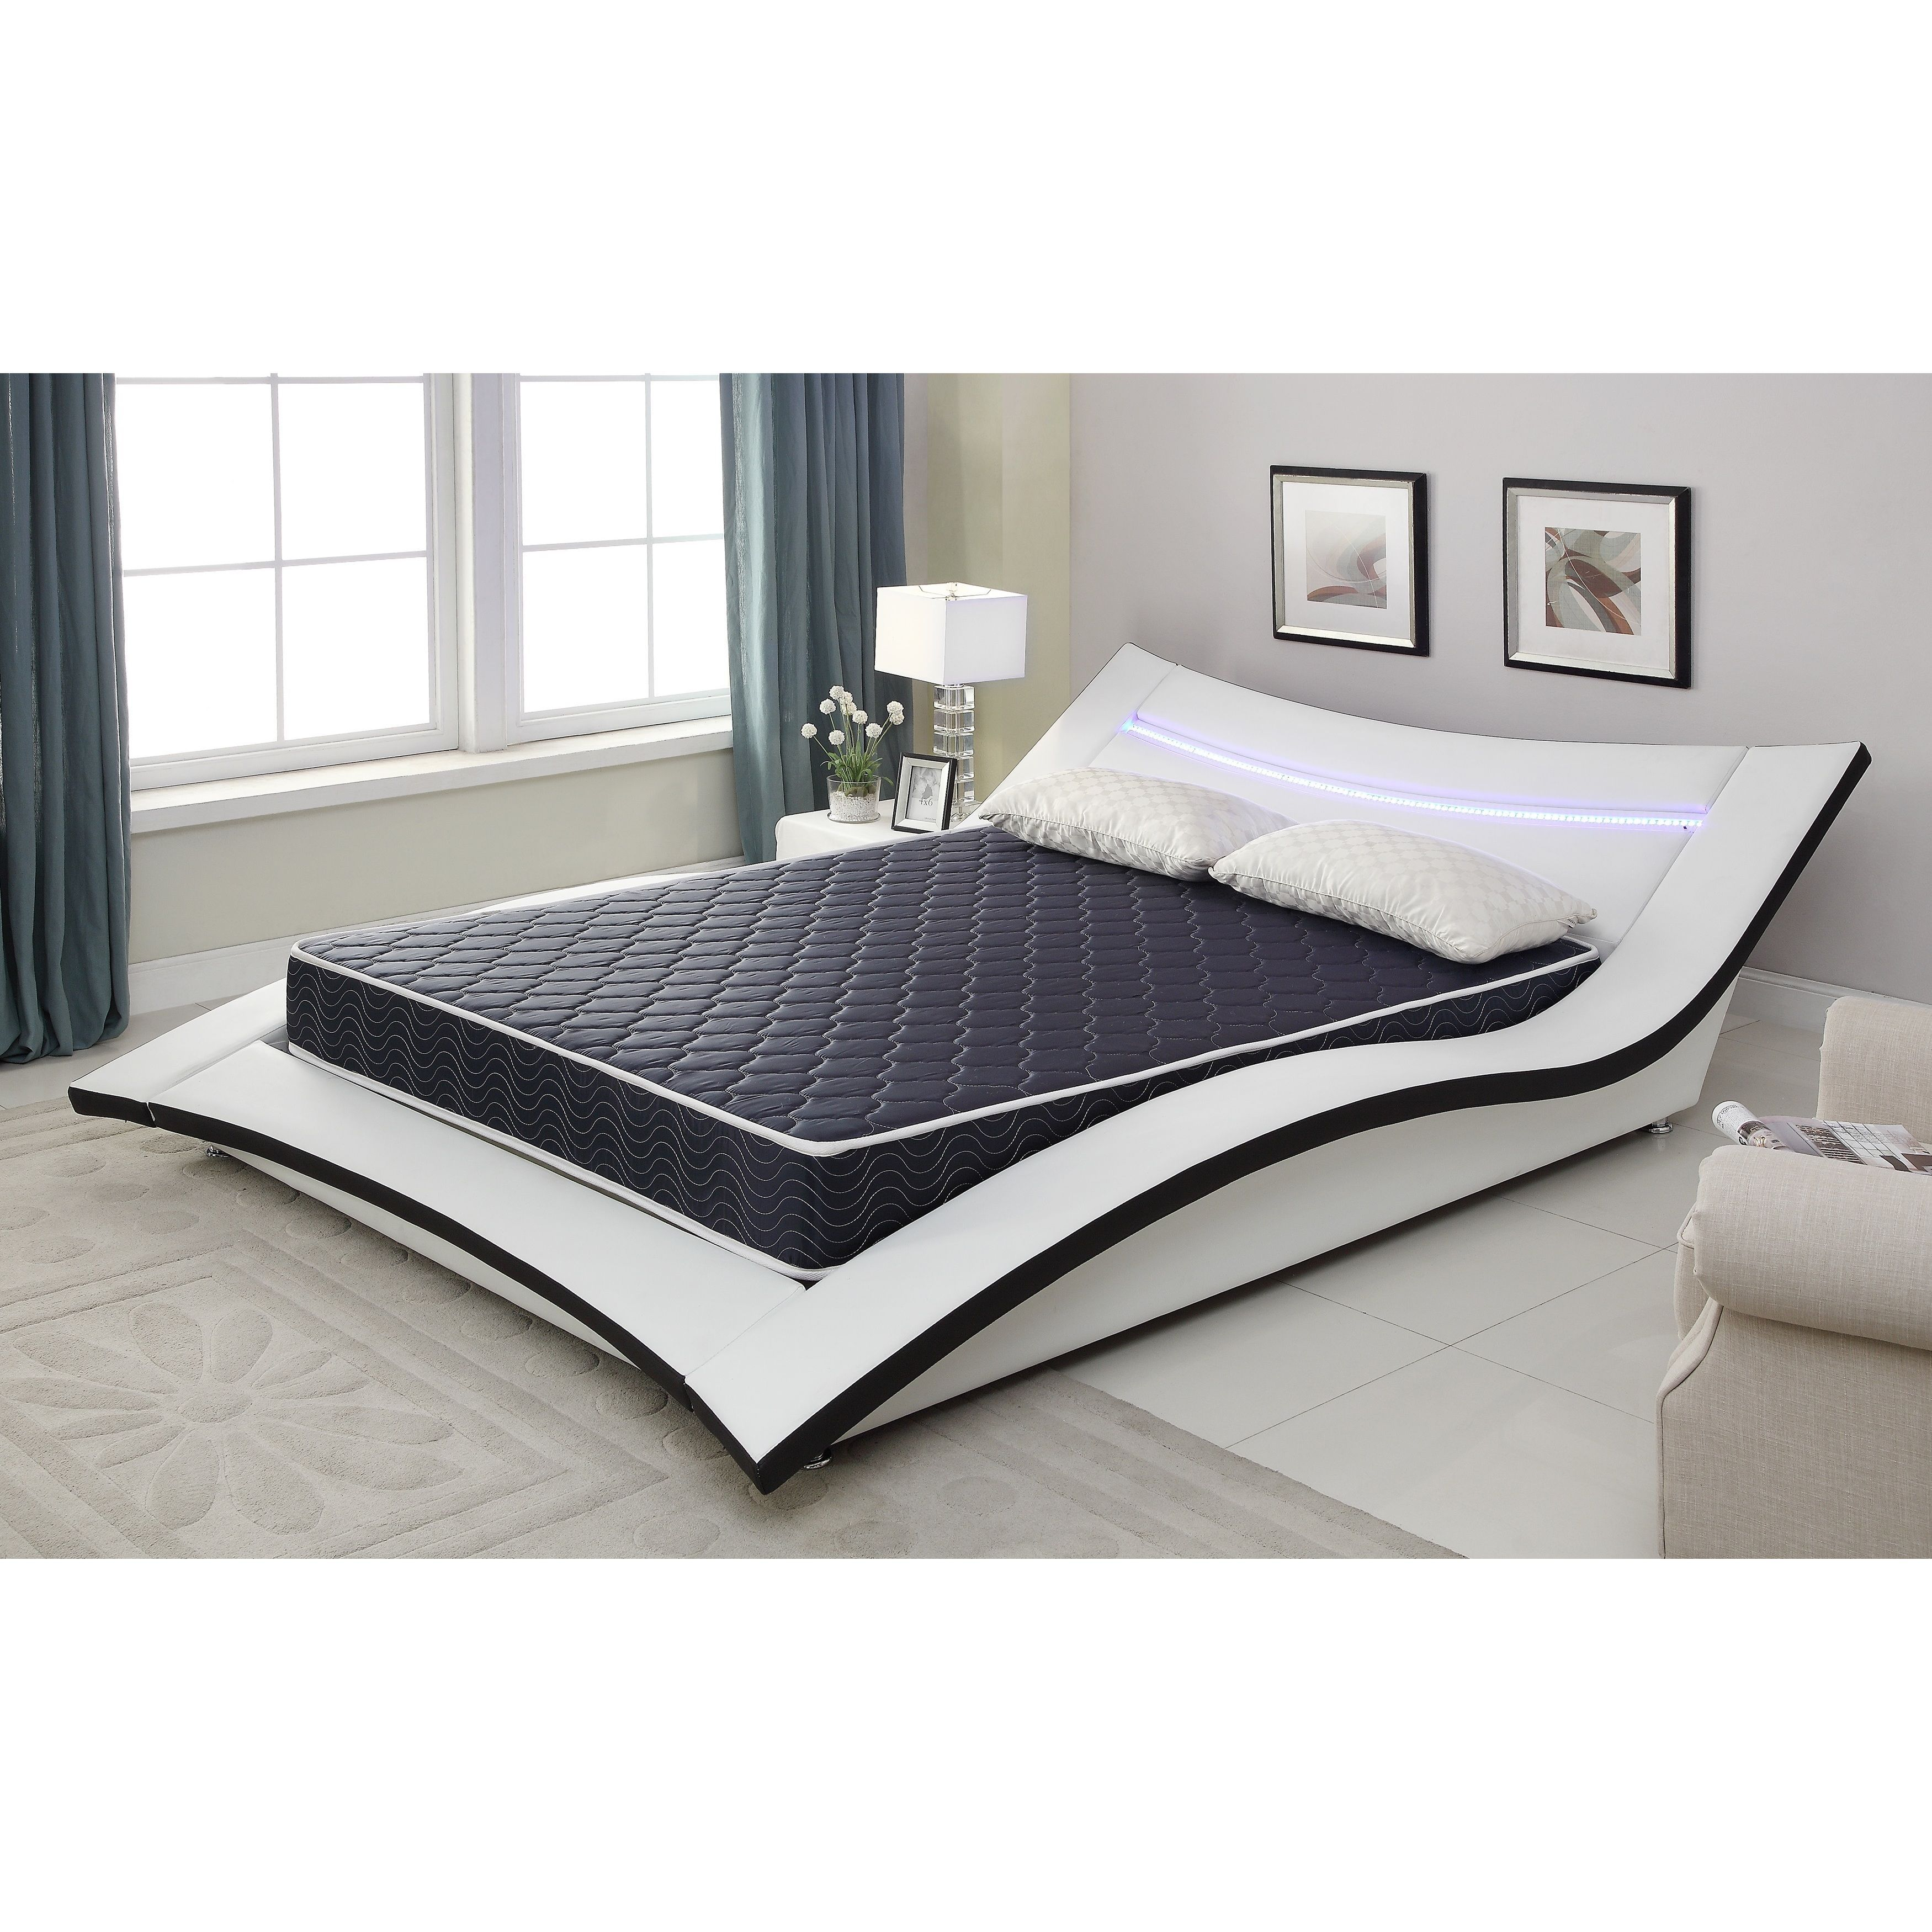 AC Pacific 6-inch Twin-size Foam Mattress with Waterproof Cover ...